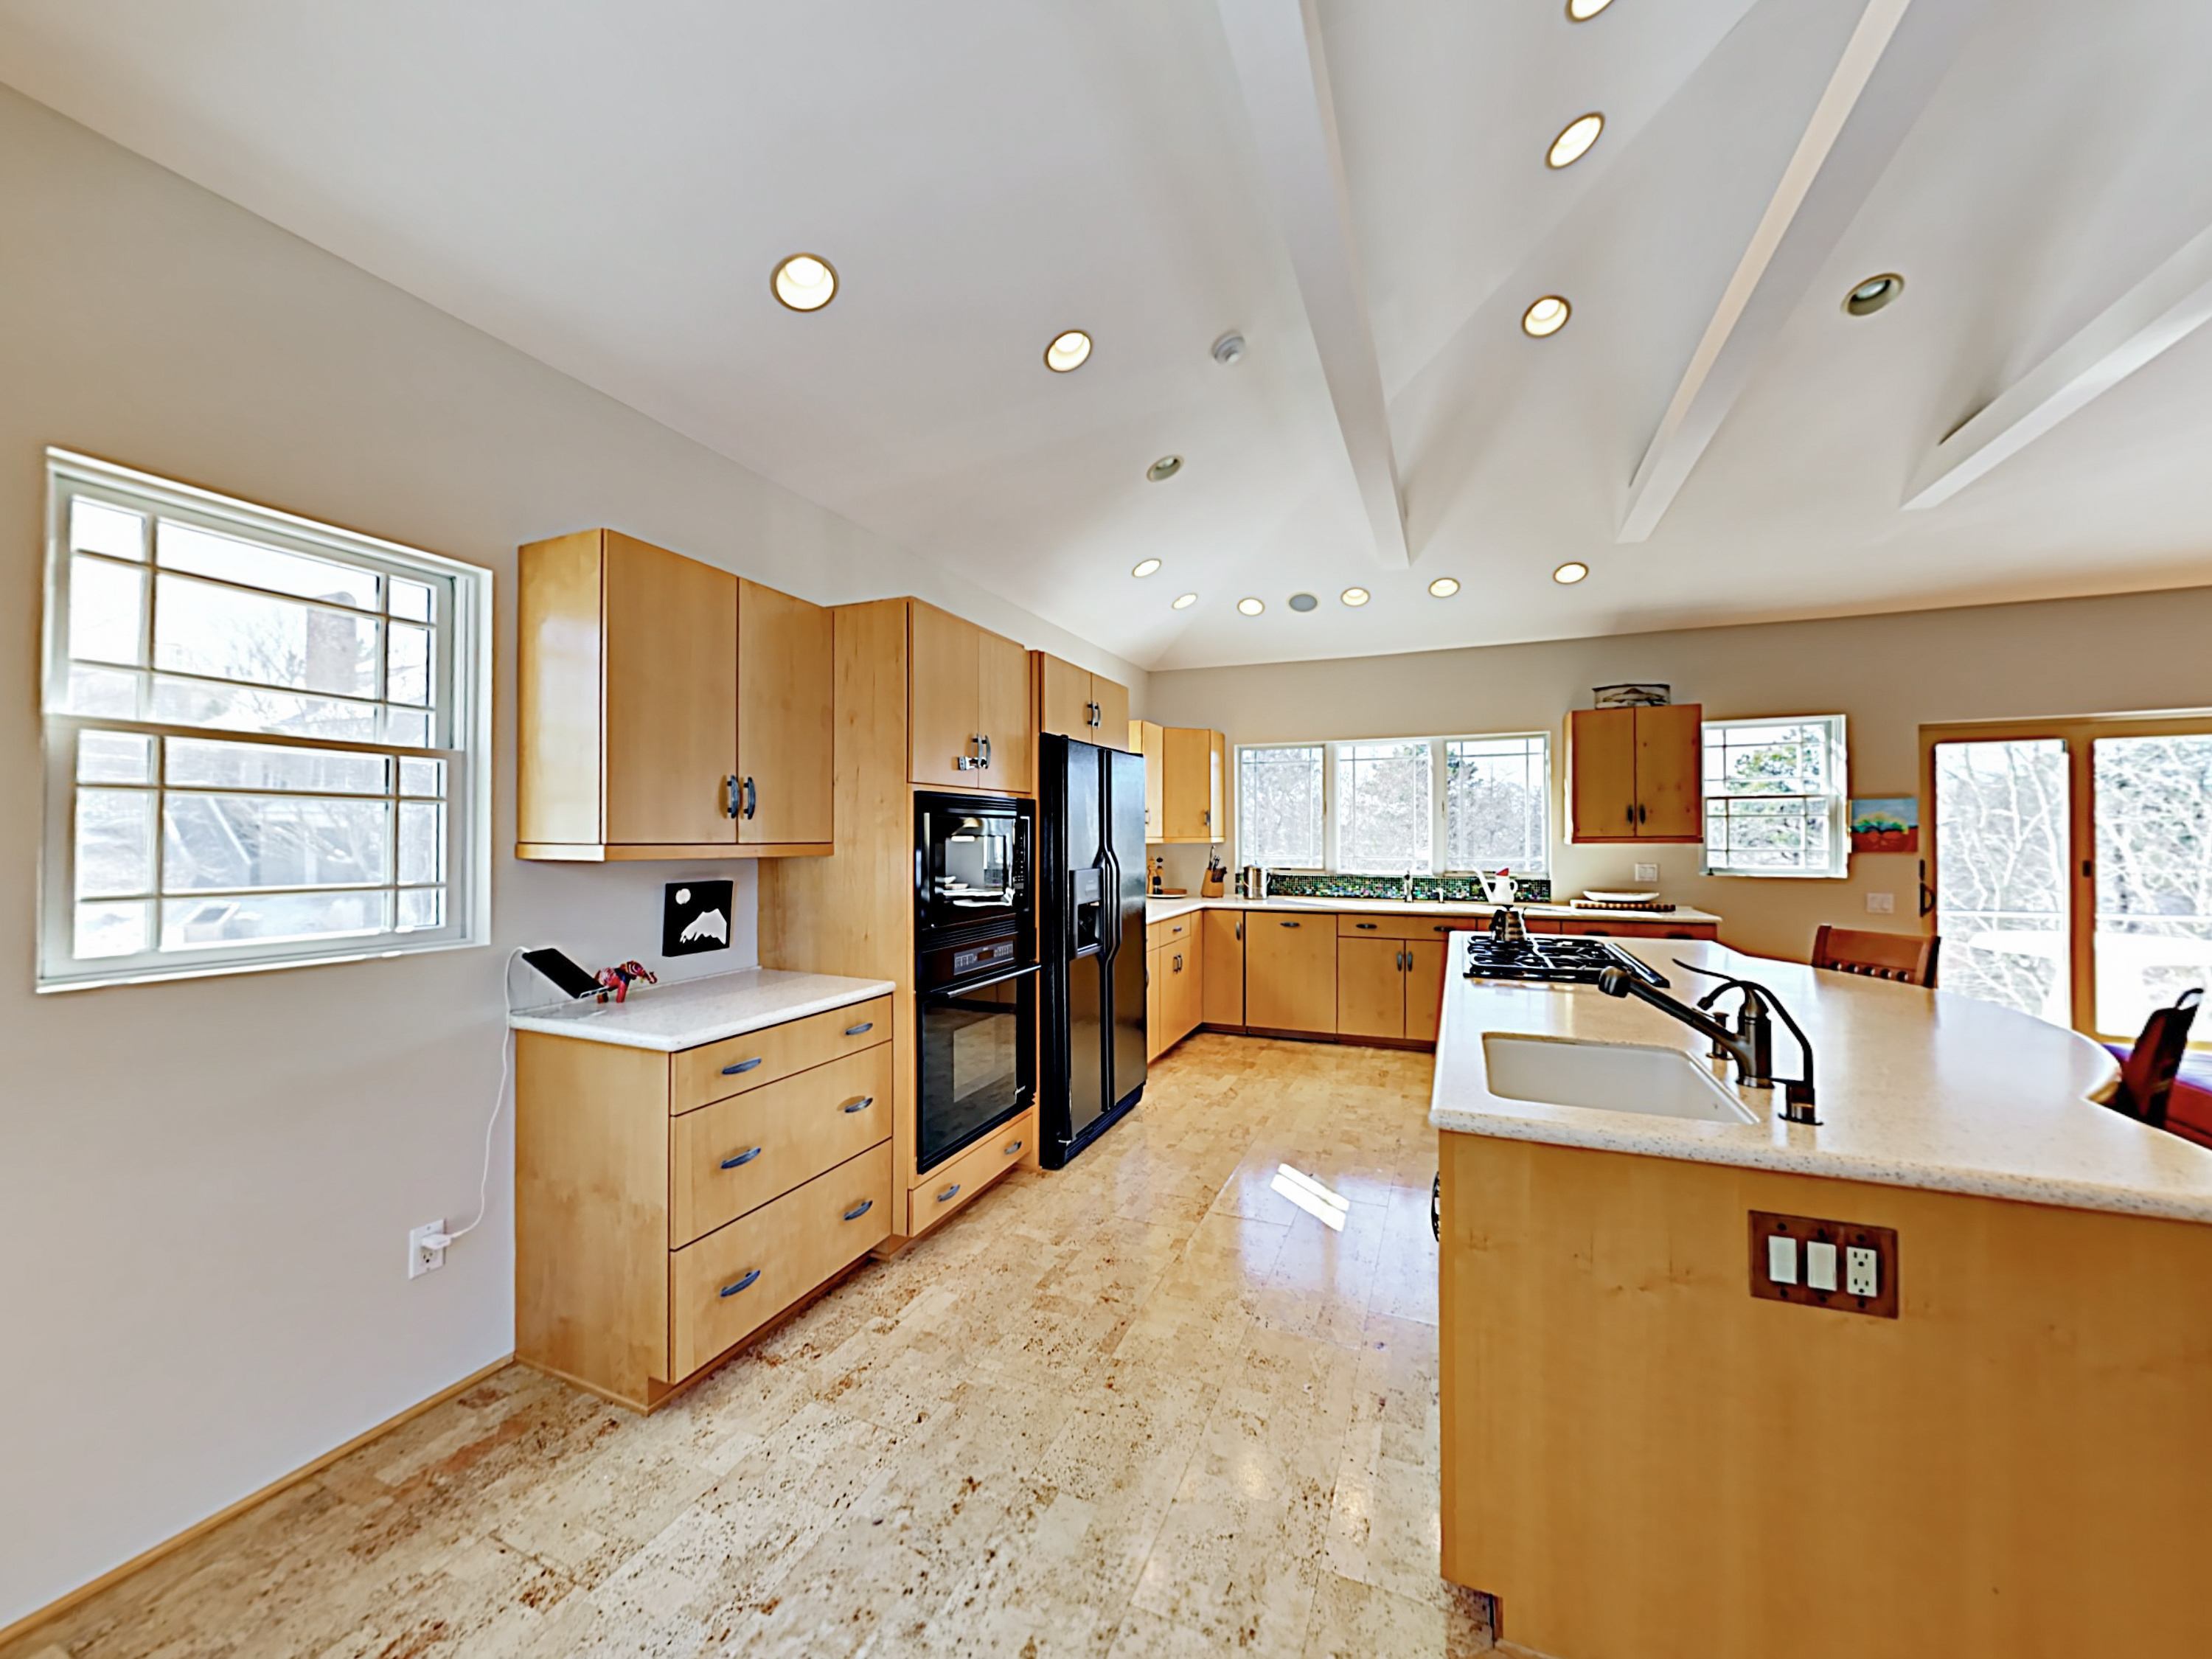 Provincetown MA Vacation Rental Prepare your favorite